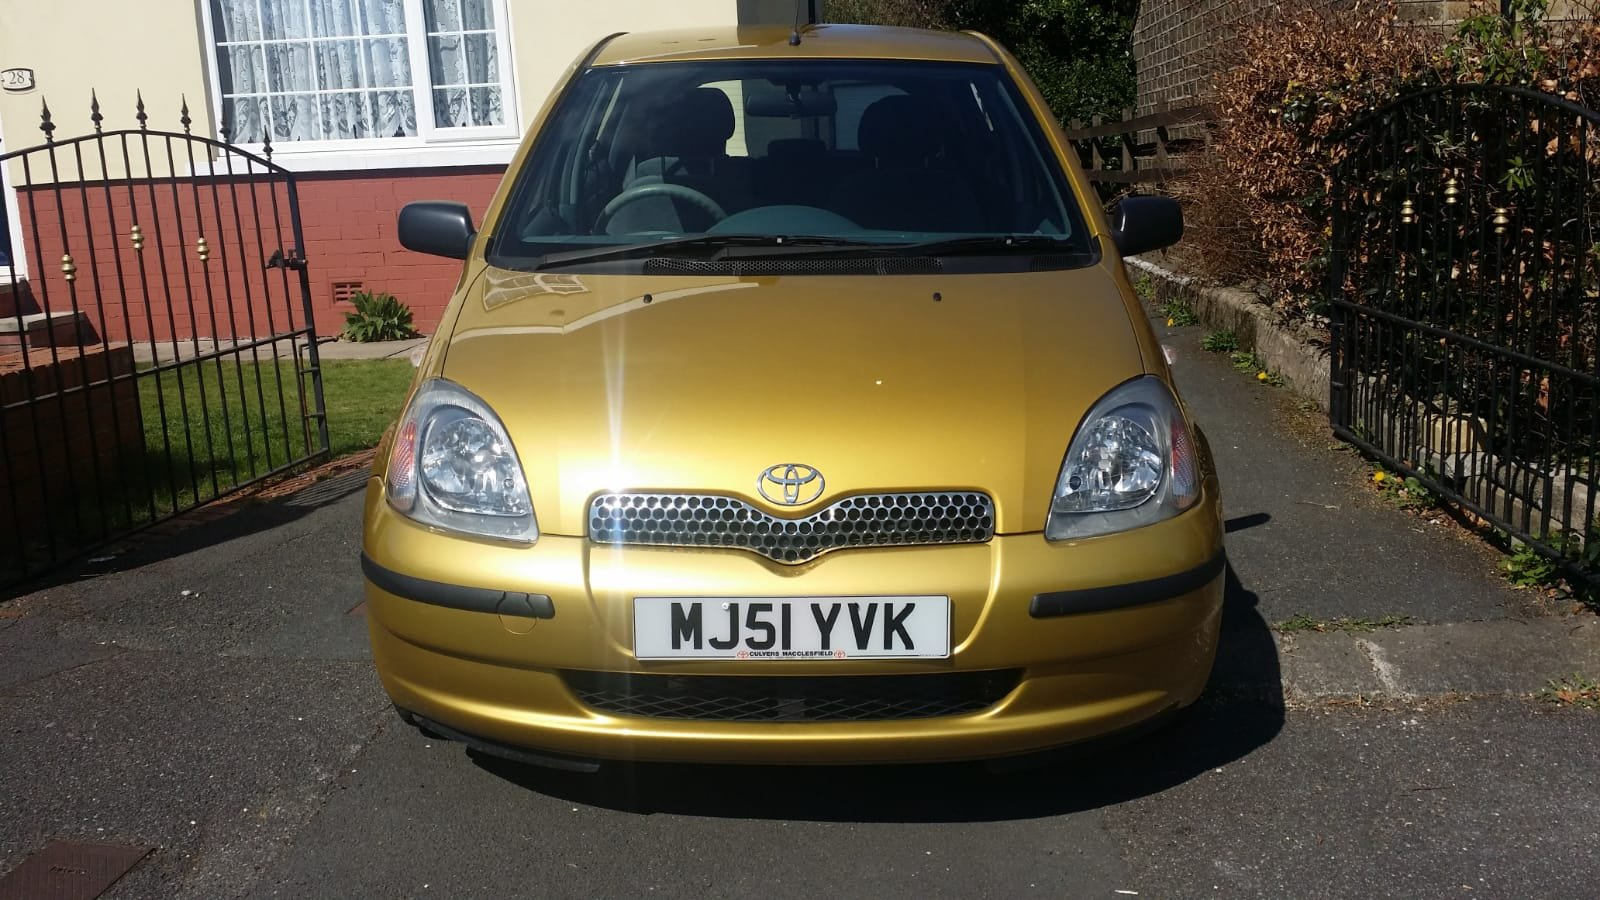 2002 Toyota Yaris 1.3 Petrol 1 Owner 33k Miles 5dr For Sale (picture 2 of 6)